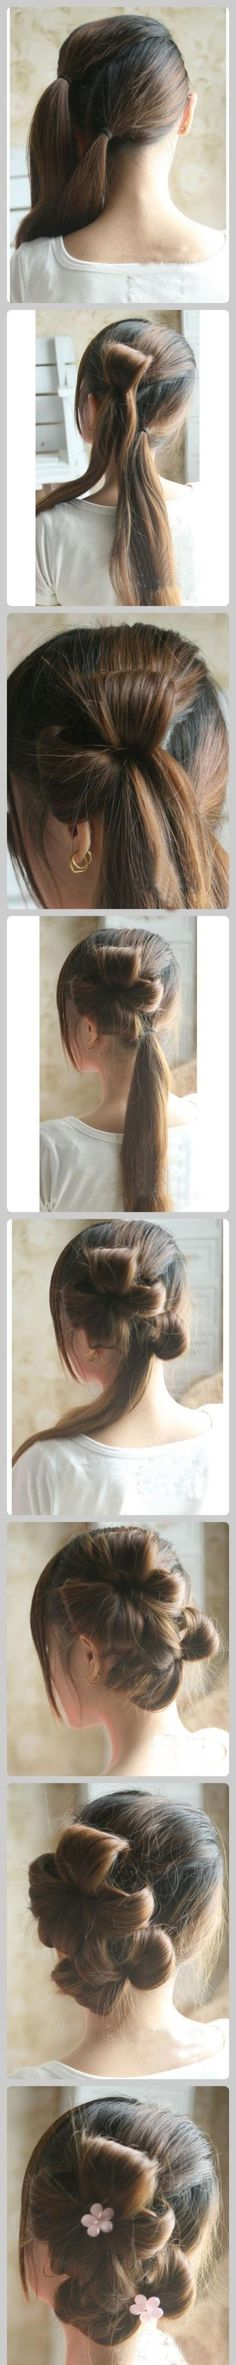 Ribbon updo